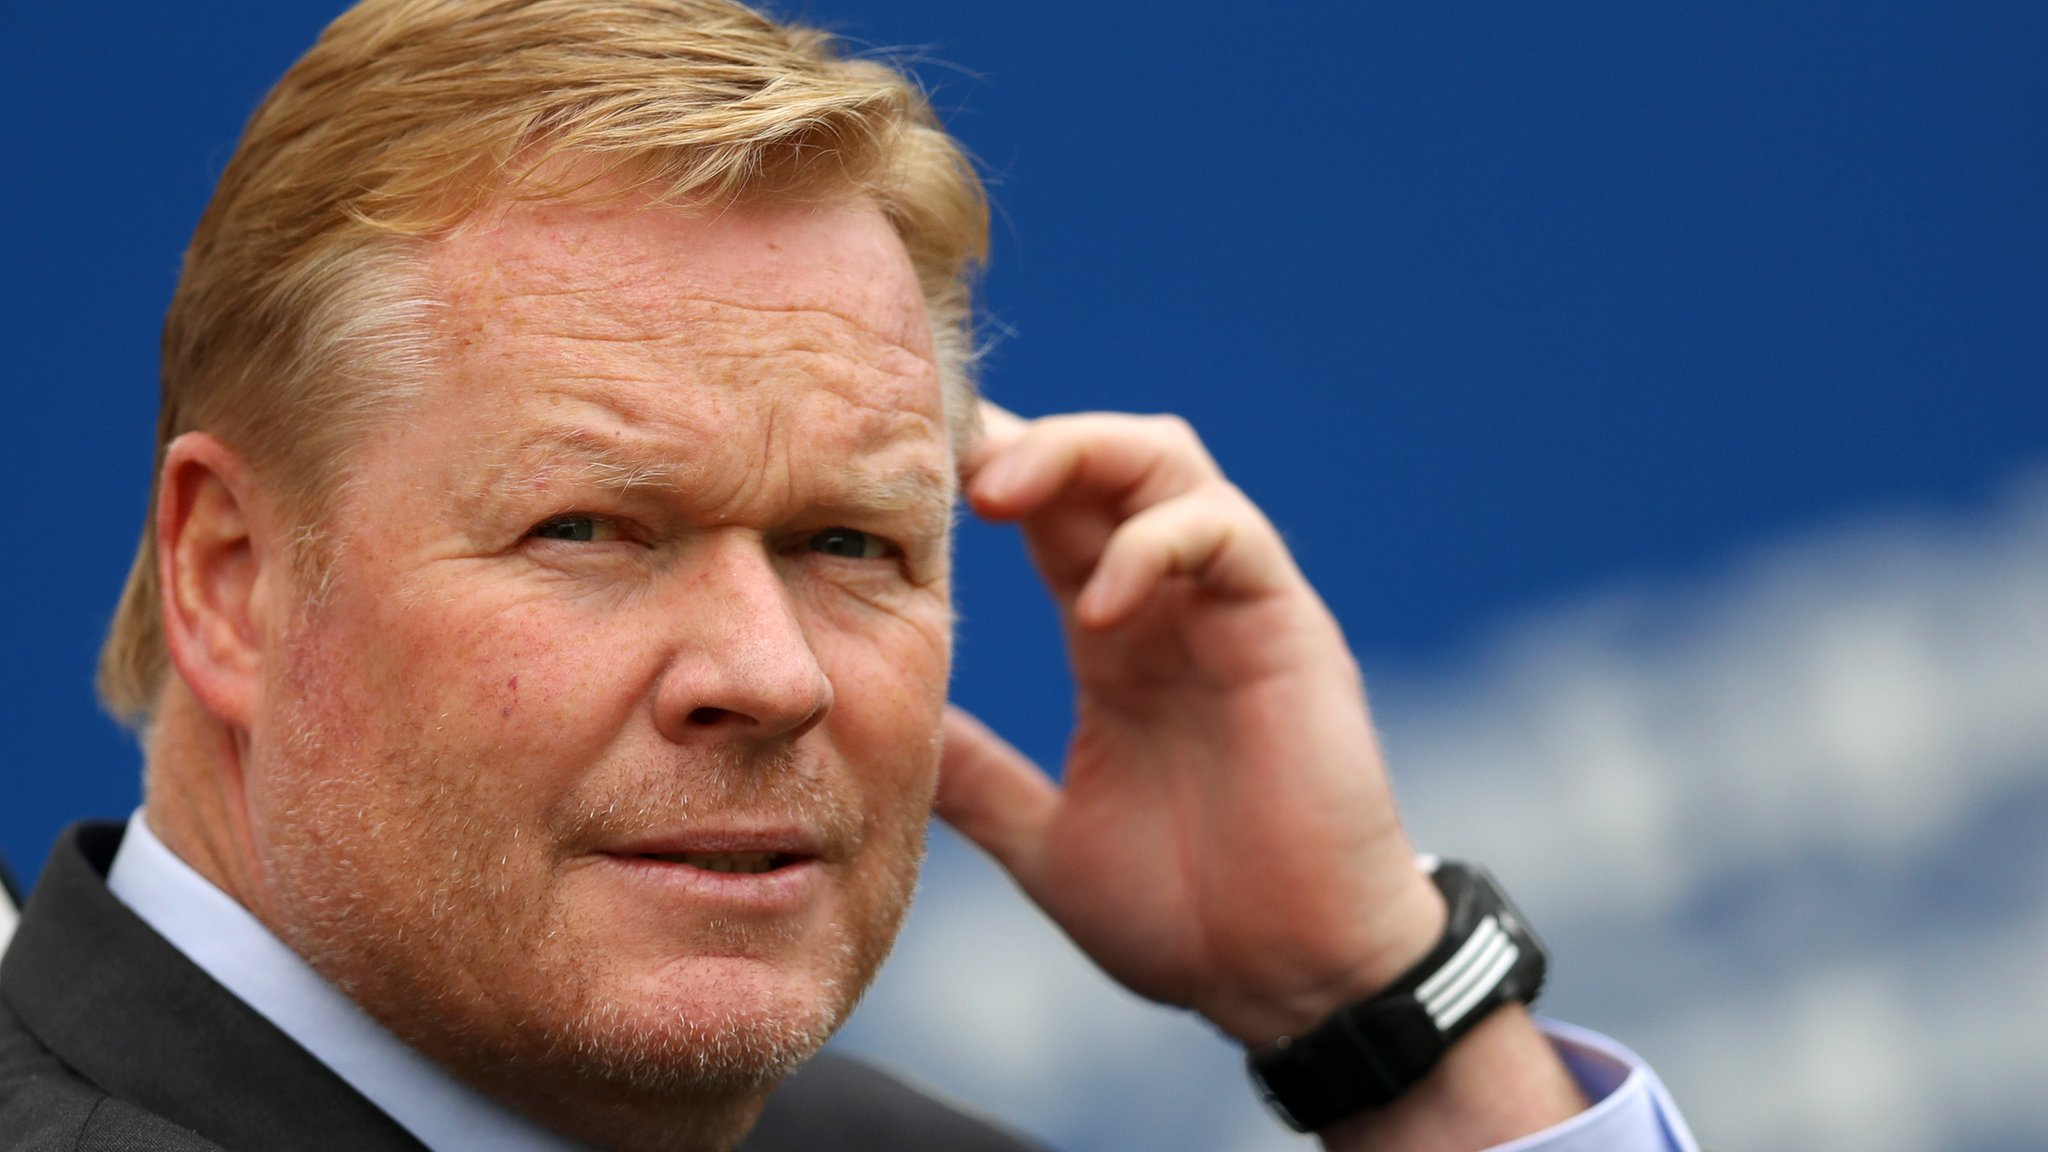 Why Koeman must hope to hang on until January - analysis